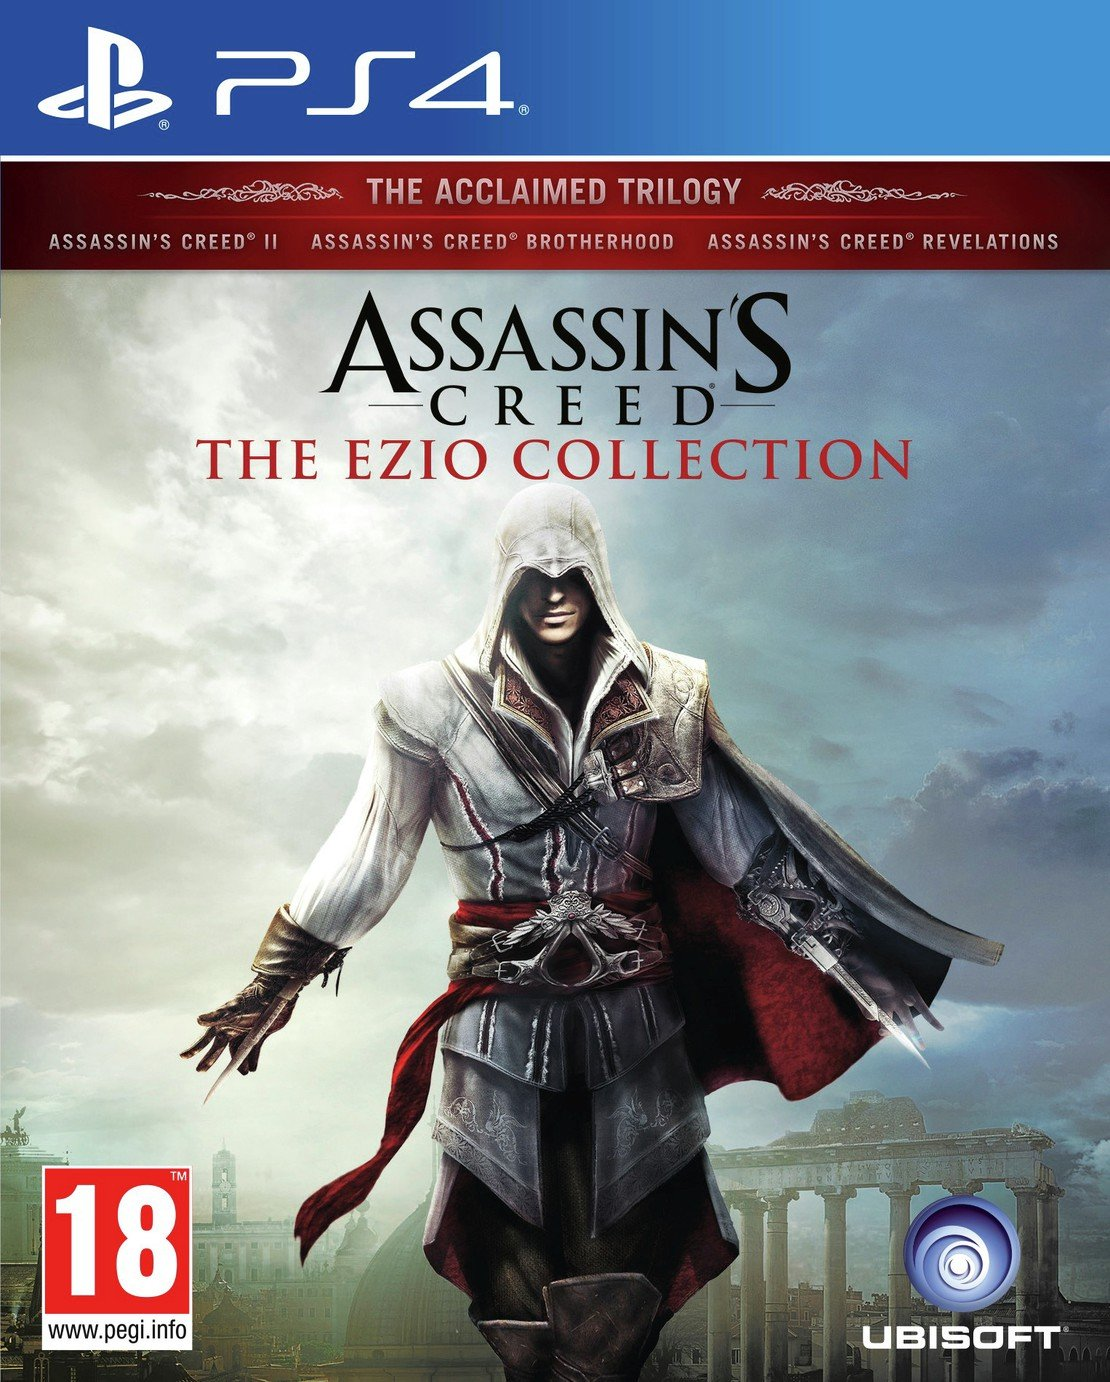 Ubisoft Assassins Creed - The Ezio Collection - PS4 Game.